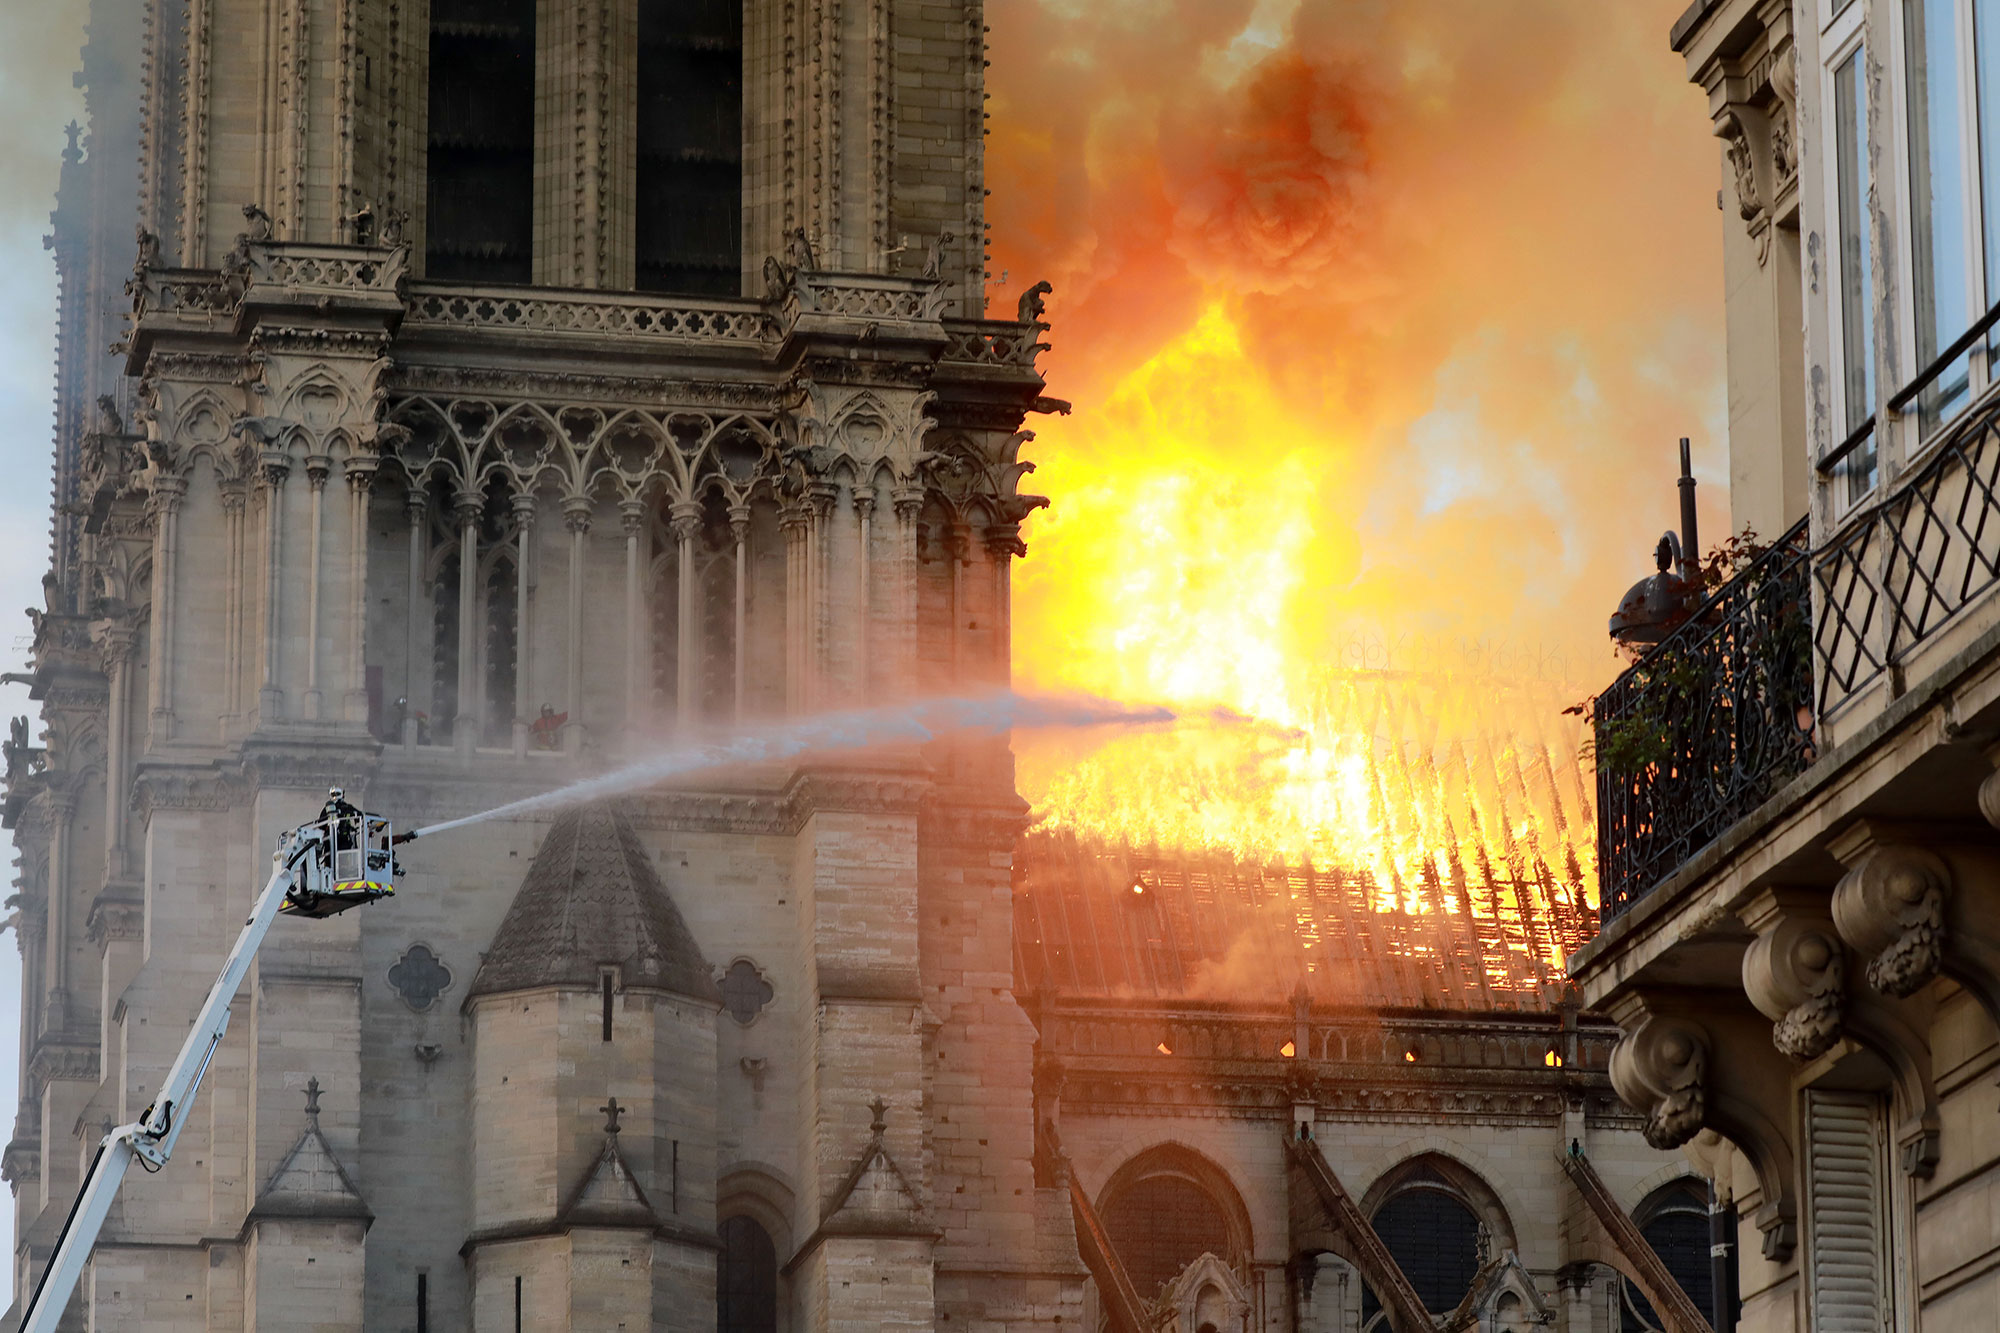 Notre Dame on Fire - A firefighter is seen fighting the flames at Notre-Dame Cathedral April 15, 2019 in Paris, France.